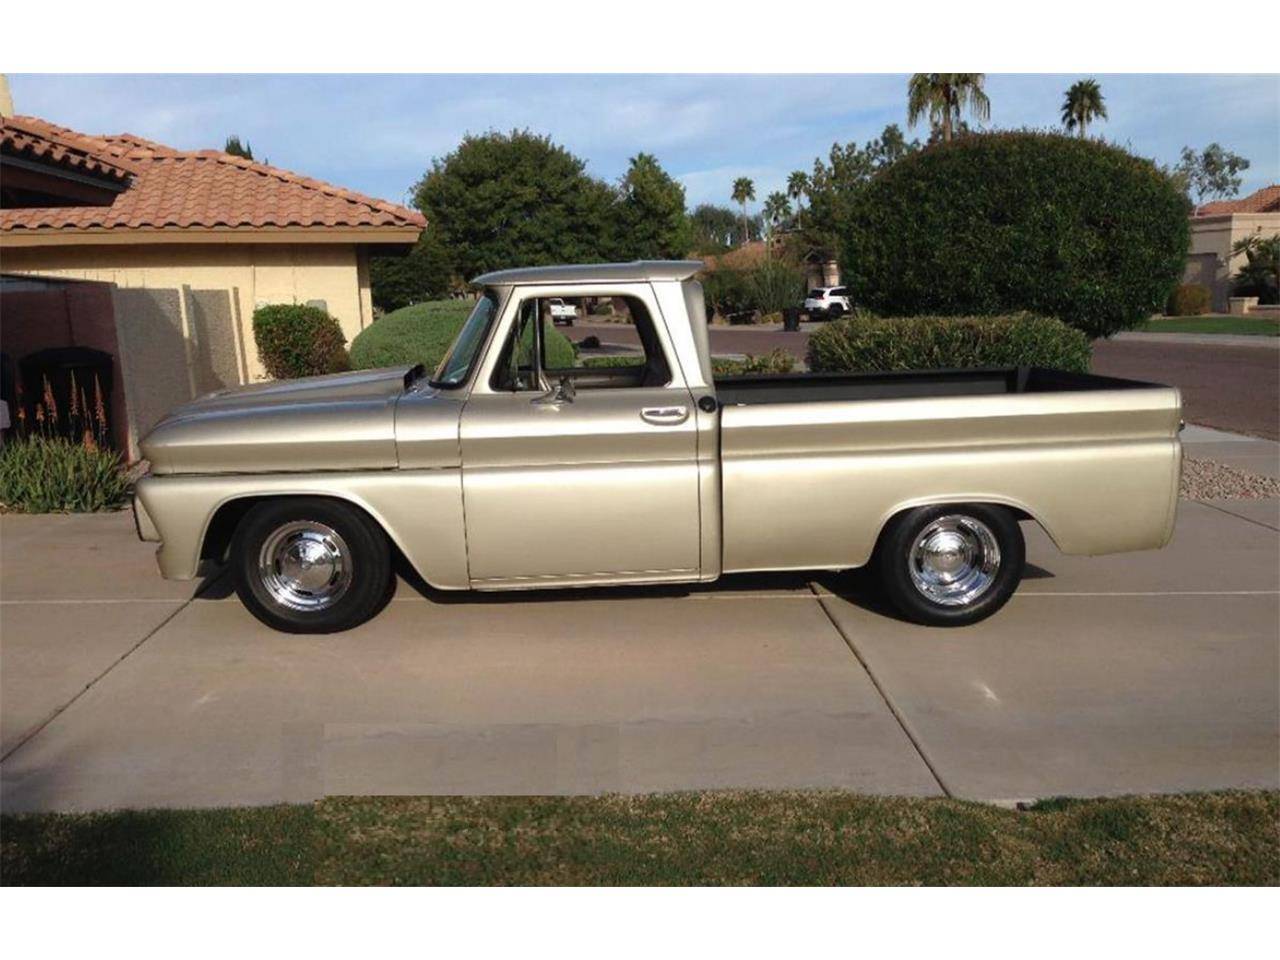 Large Picture of Classic '66 Chevrolet C10 located in Tempe Arizona - $17,000.00 Offered by a Private Seller - QNAU